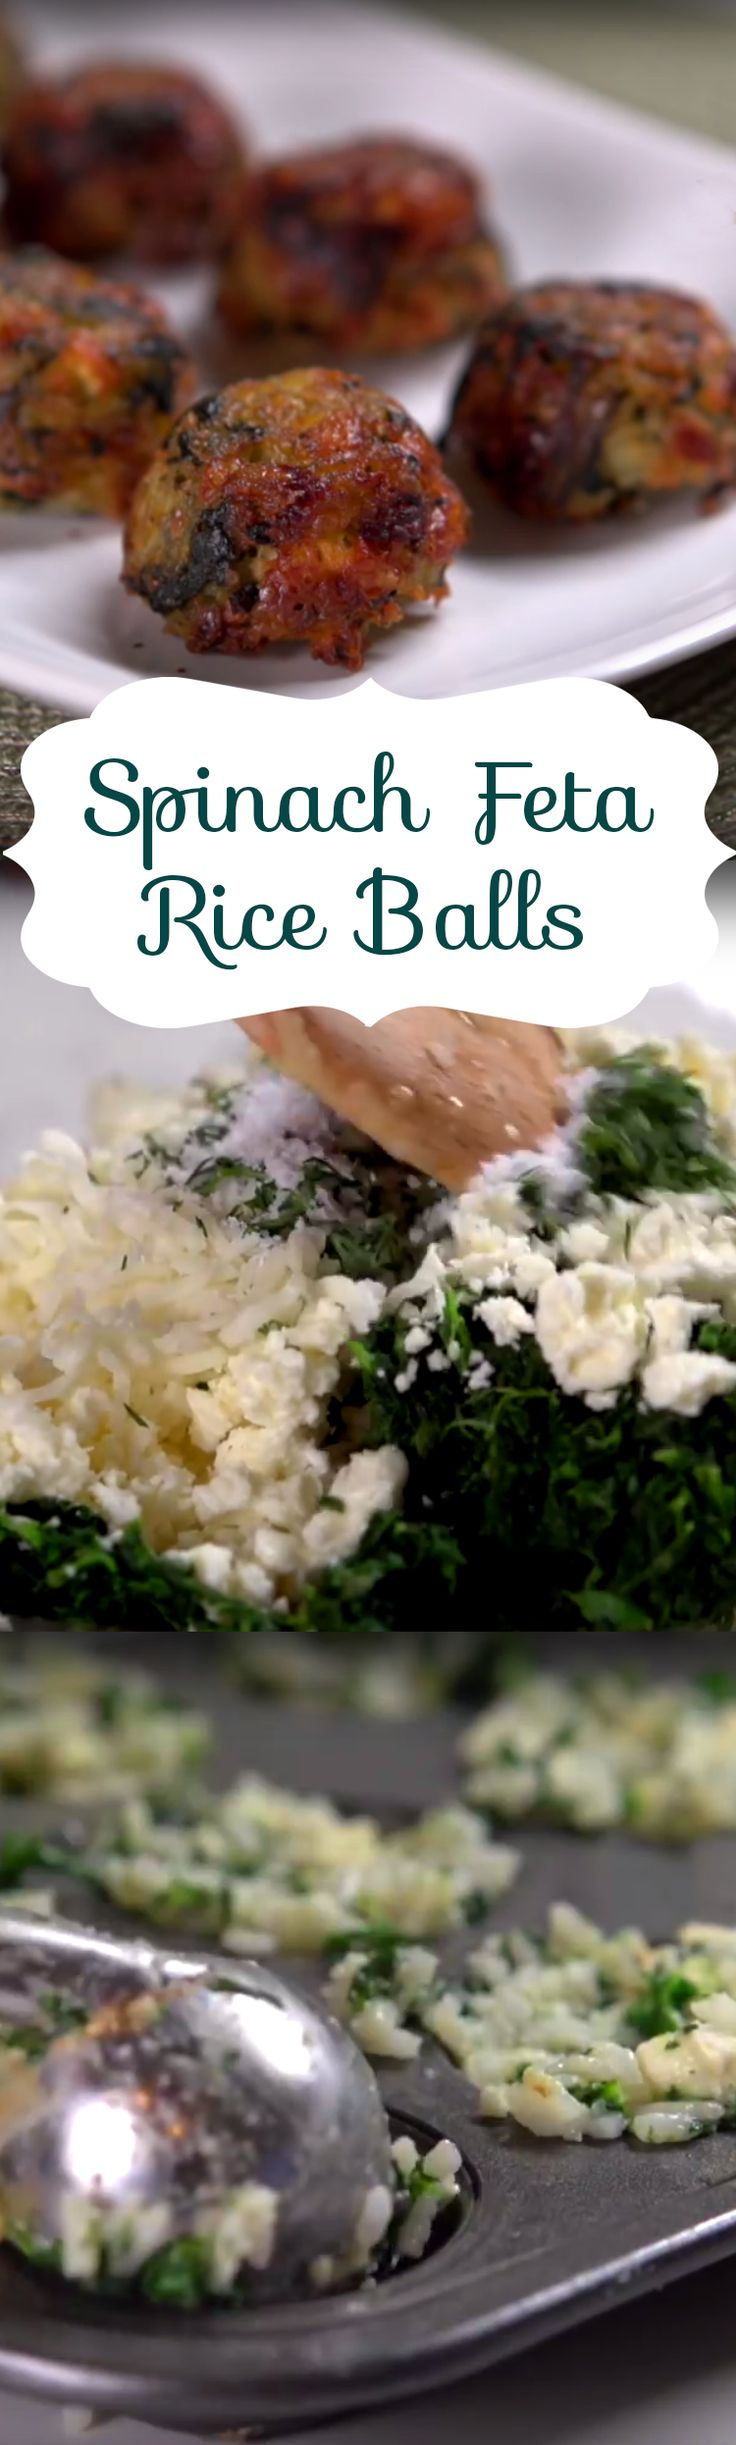 Spinach Feta Rice Balls Recipe | Here's an easy muffin tin recipe that makes for a great appetizer. You'll need onion, garlic, dill, rice, spinach, feta, mozzarella & parmesan cheese butter, eggs, and salt & pepper to whip up this tasty bites. Click to see the short how-to video.